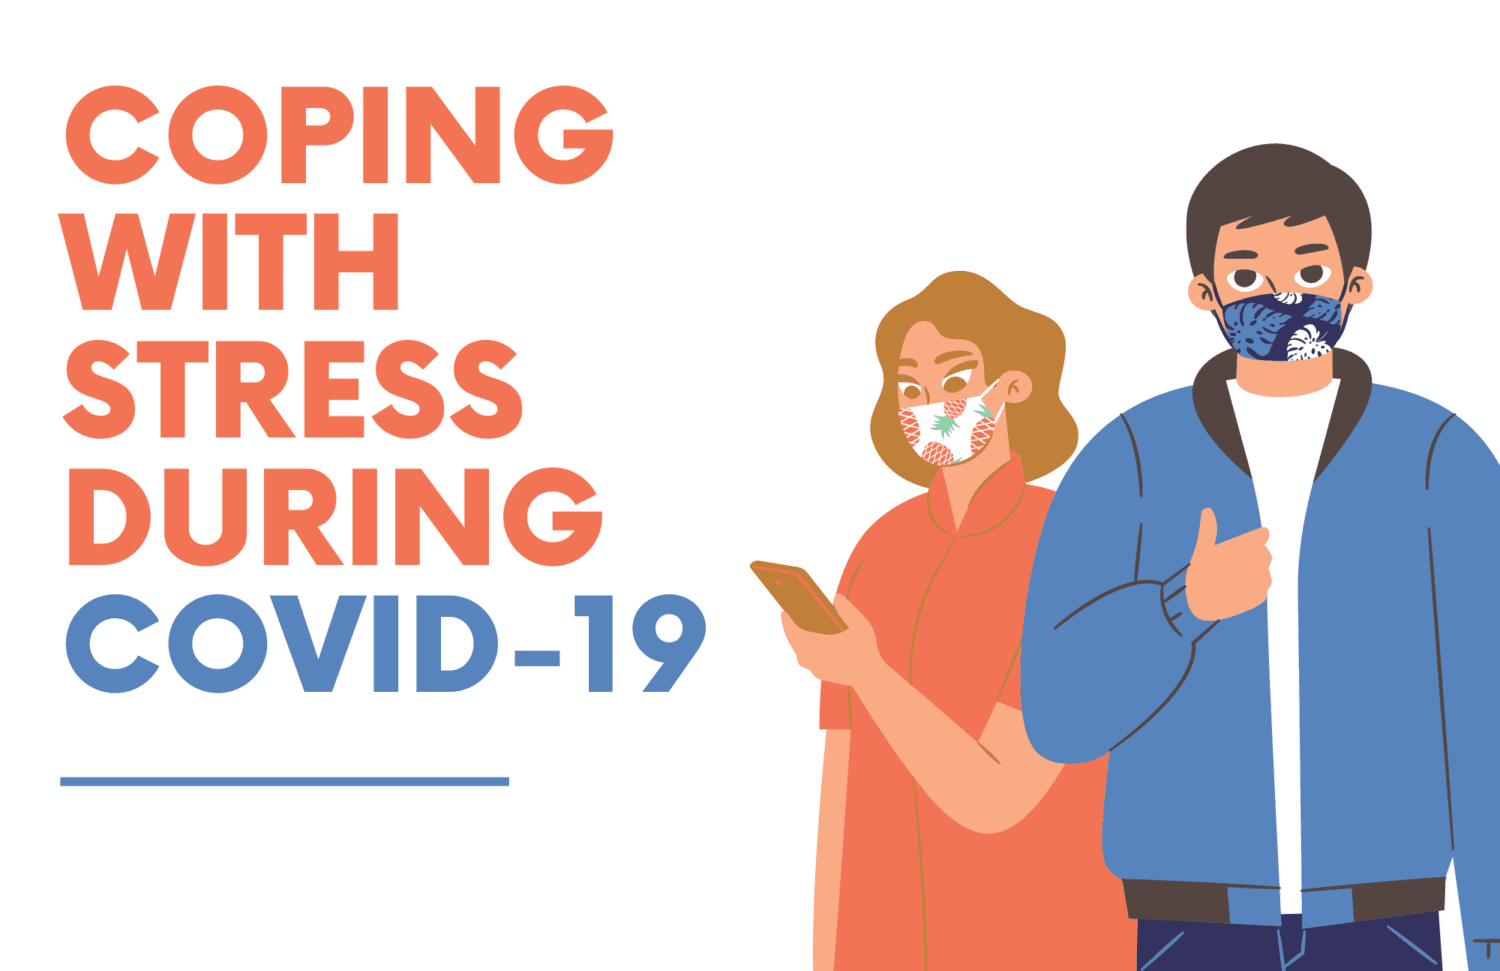 Coping With Stress During The COVID-19 Pandemic